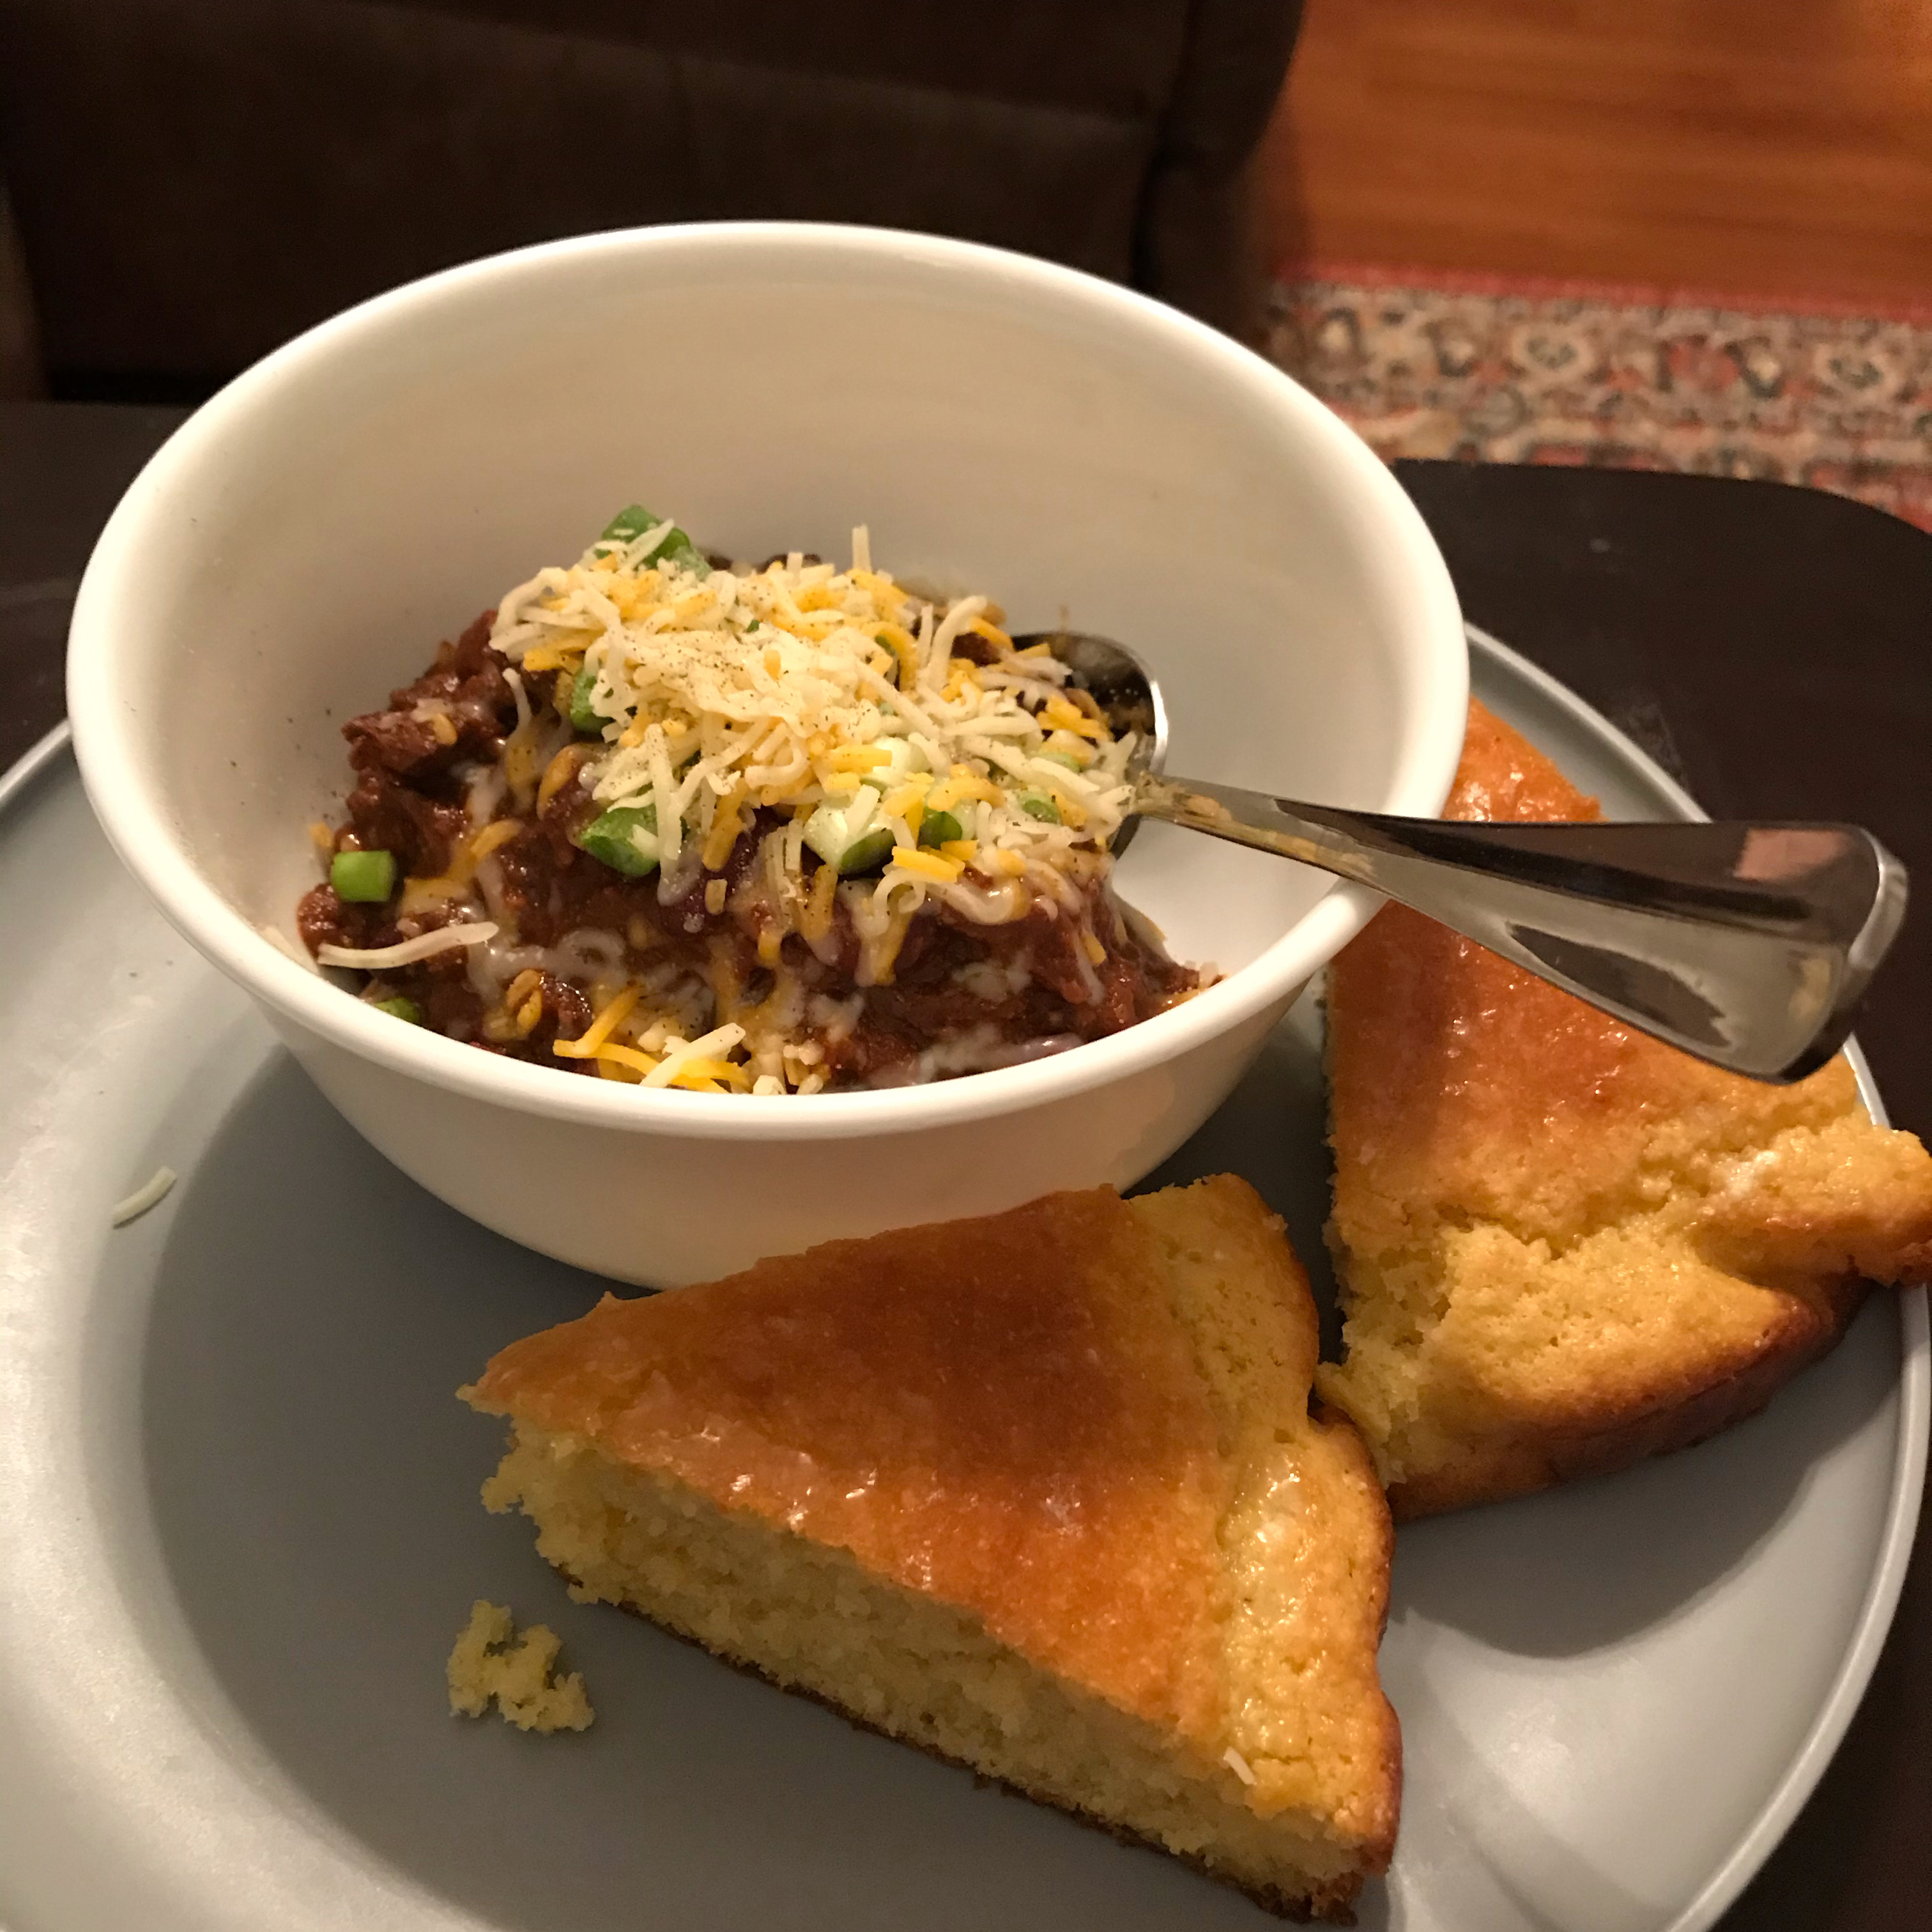 Slow Cooker Venison Chili for the Big Game